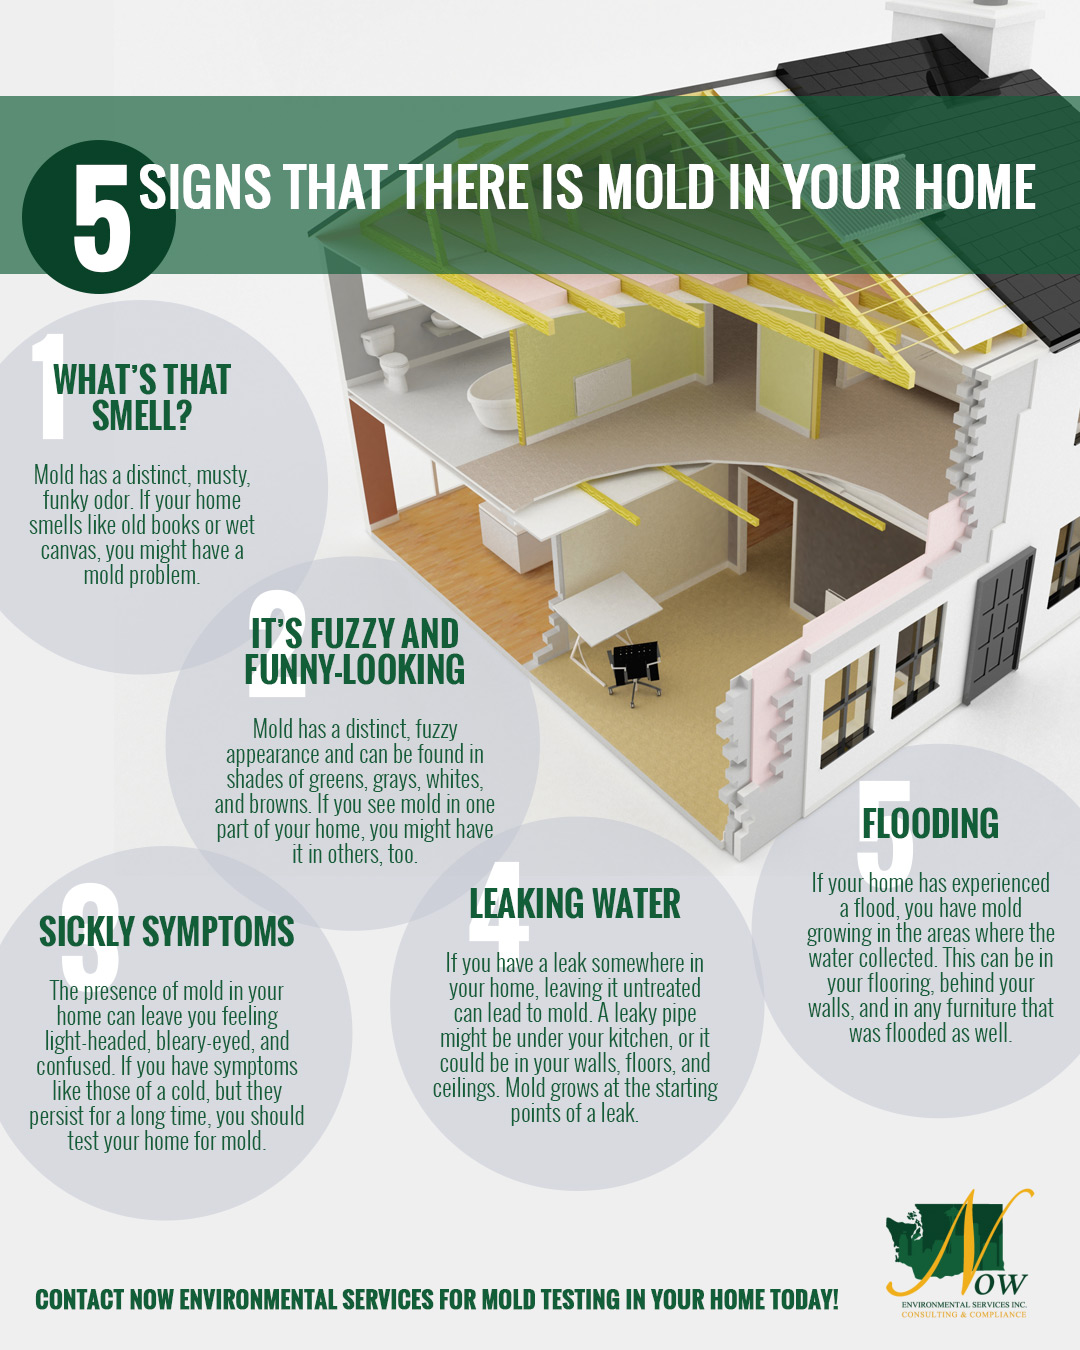 Mold Testing Seattle: 5 Signs That There Is Mold In Your Home